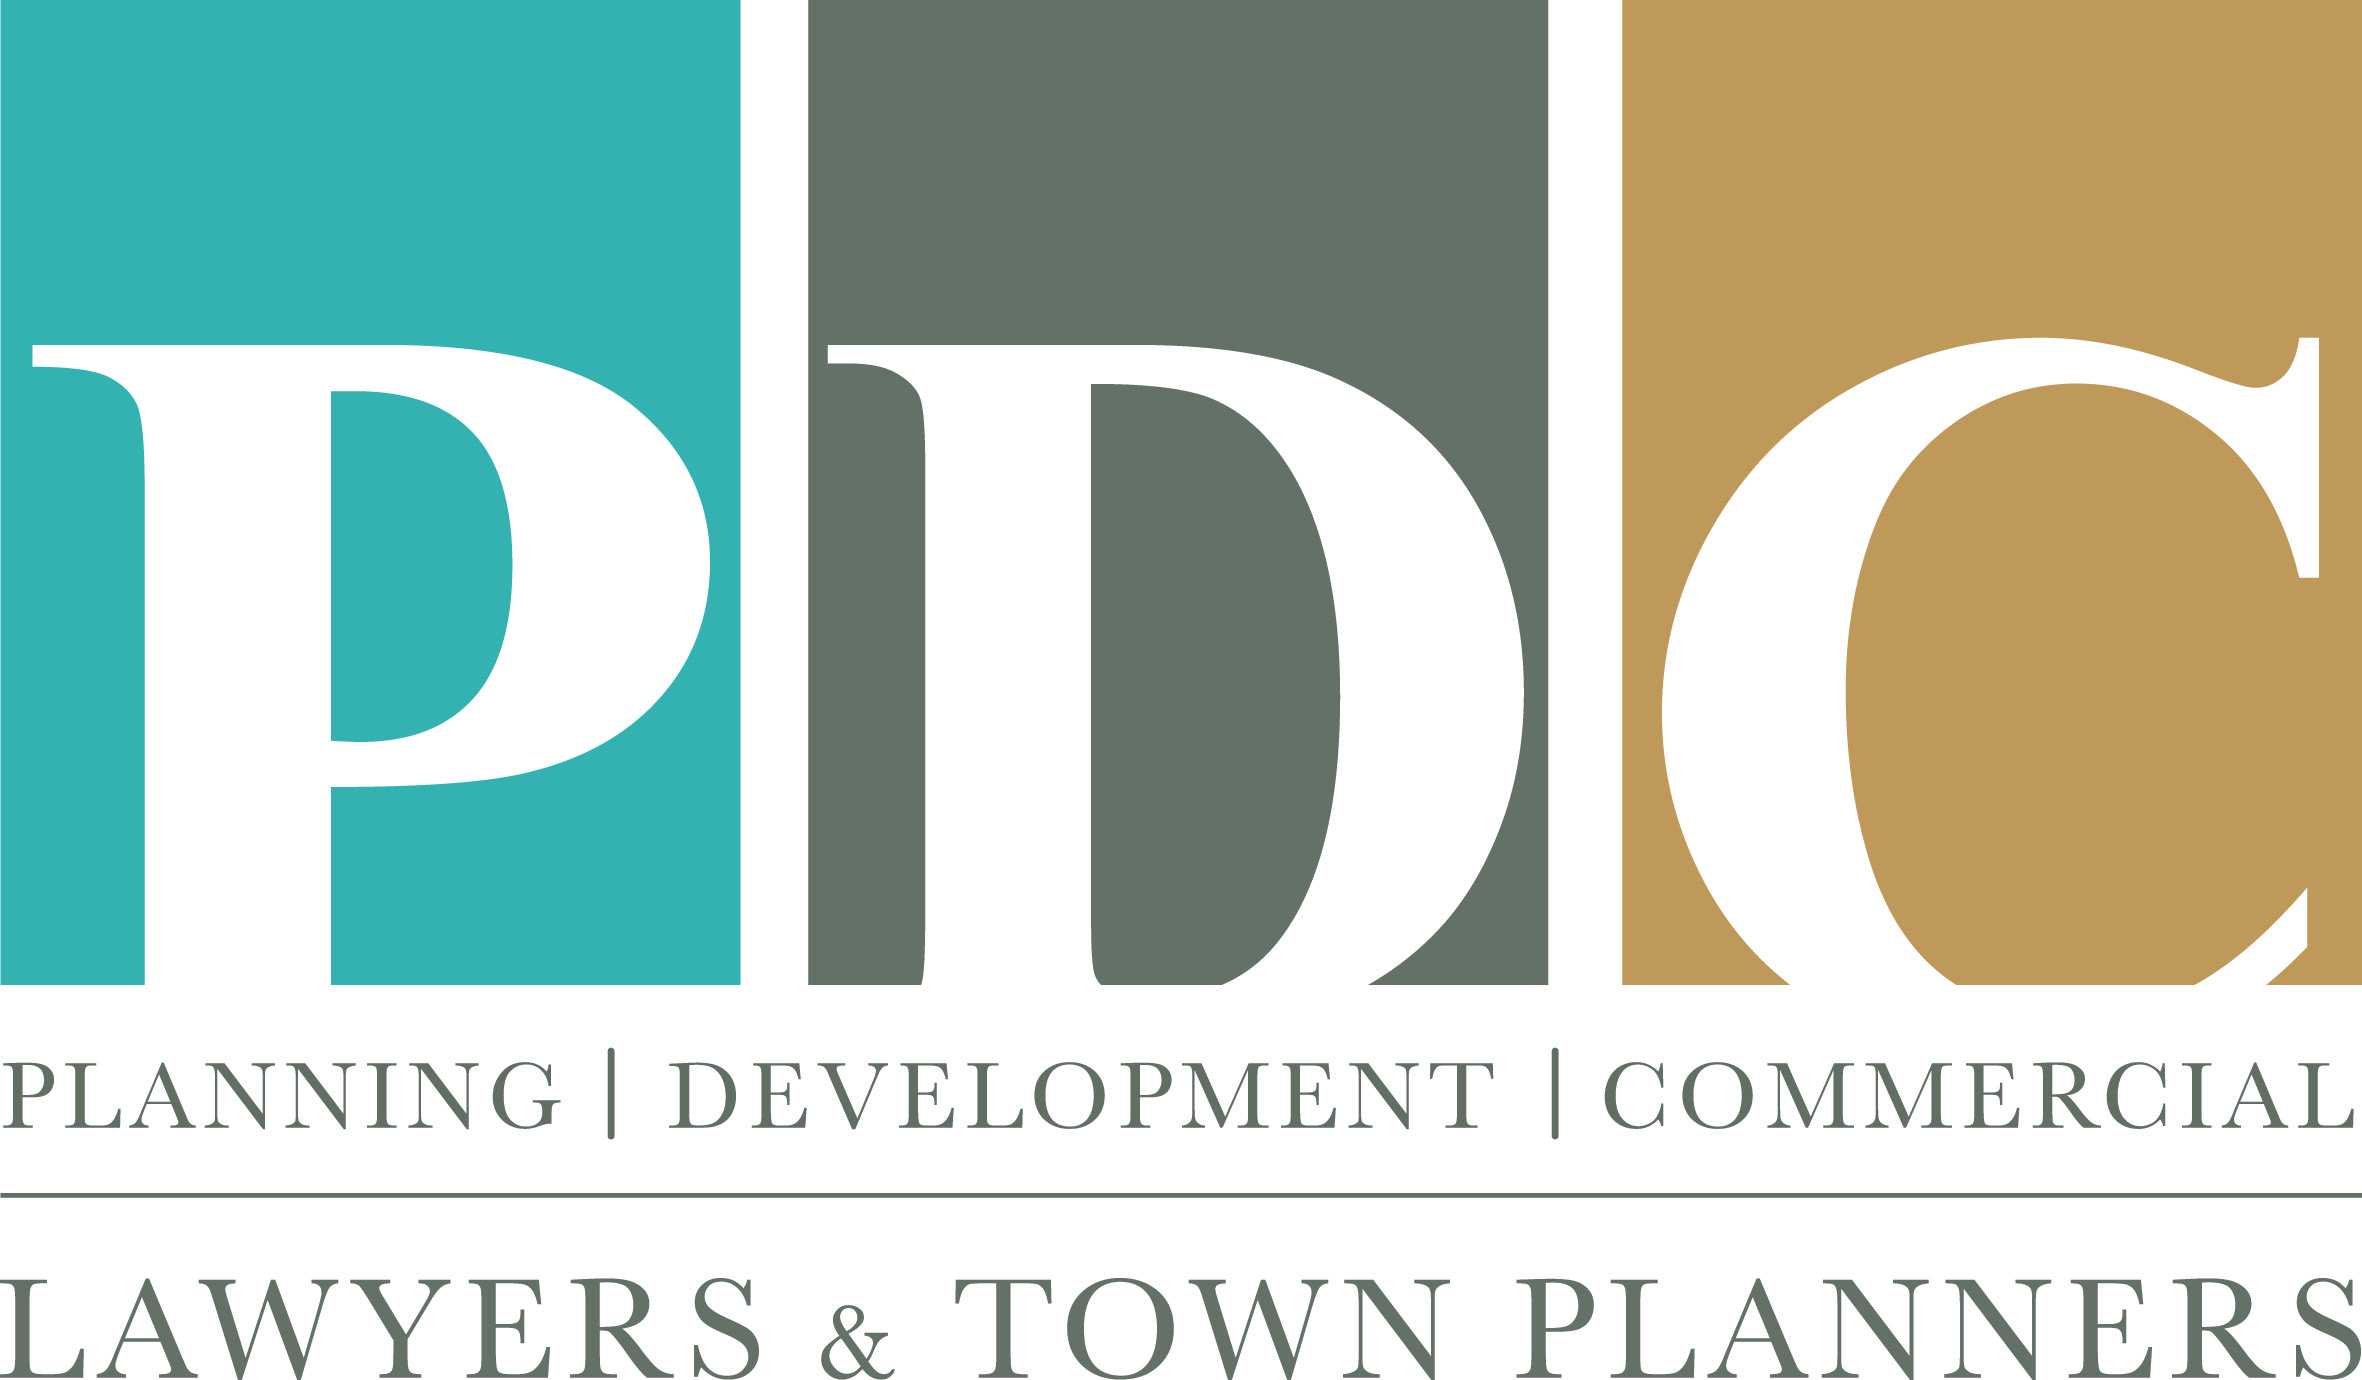 PDC Laywers Town Planners Logo 2020